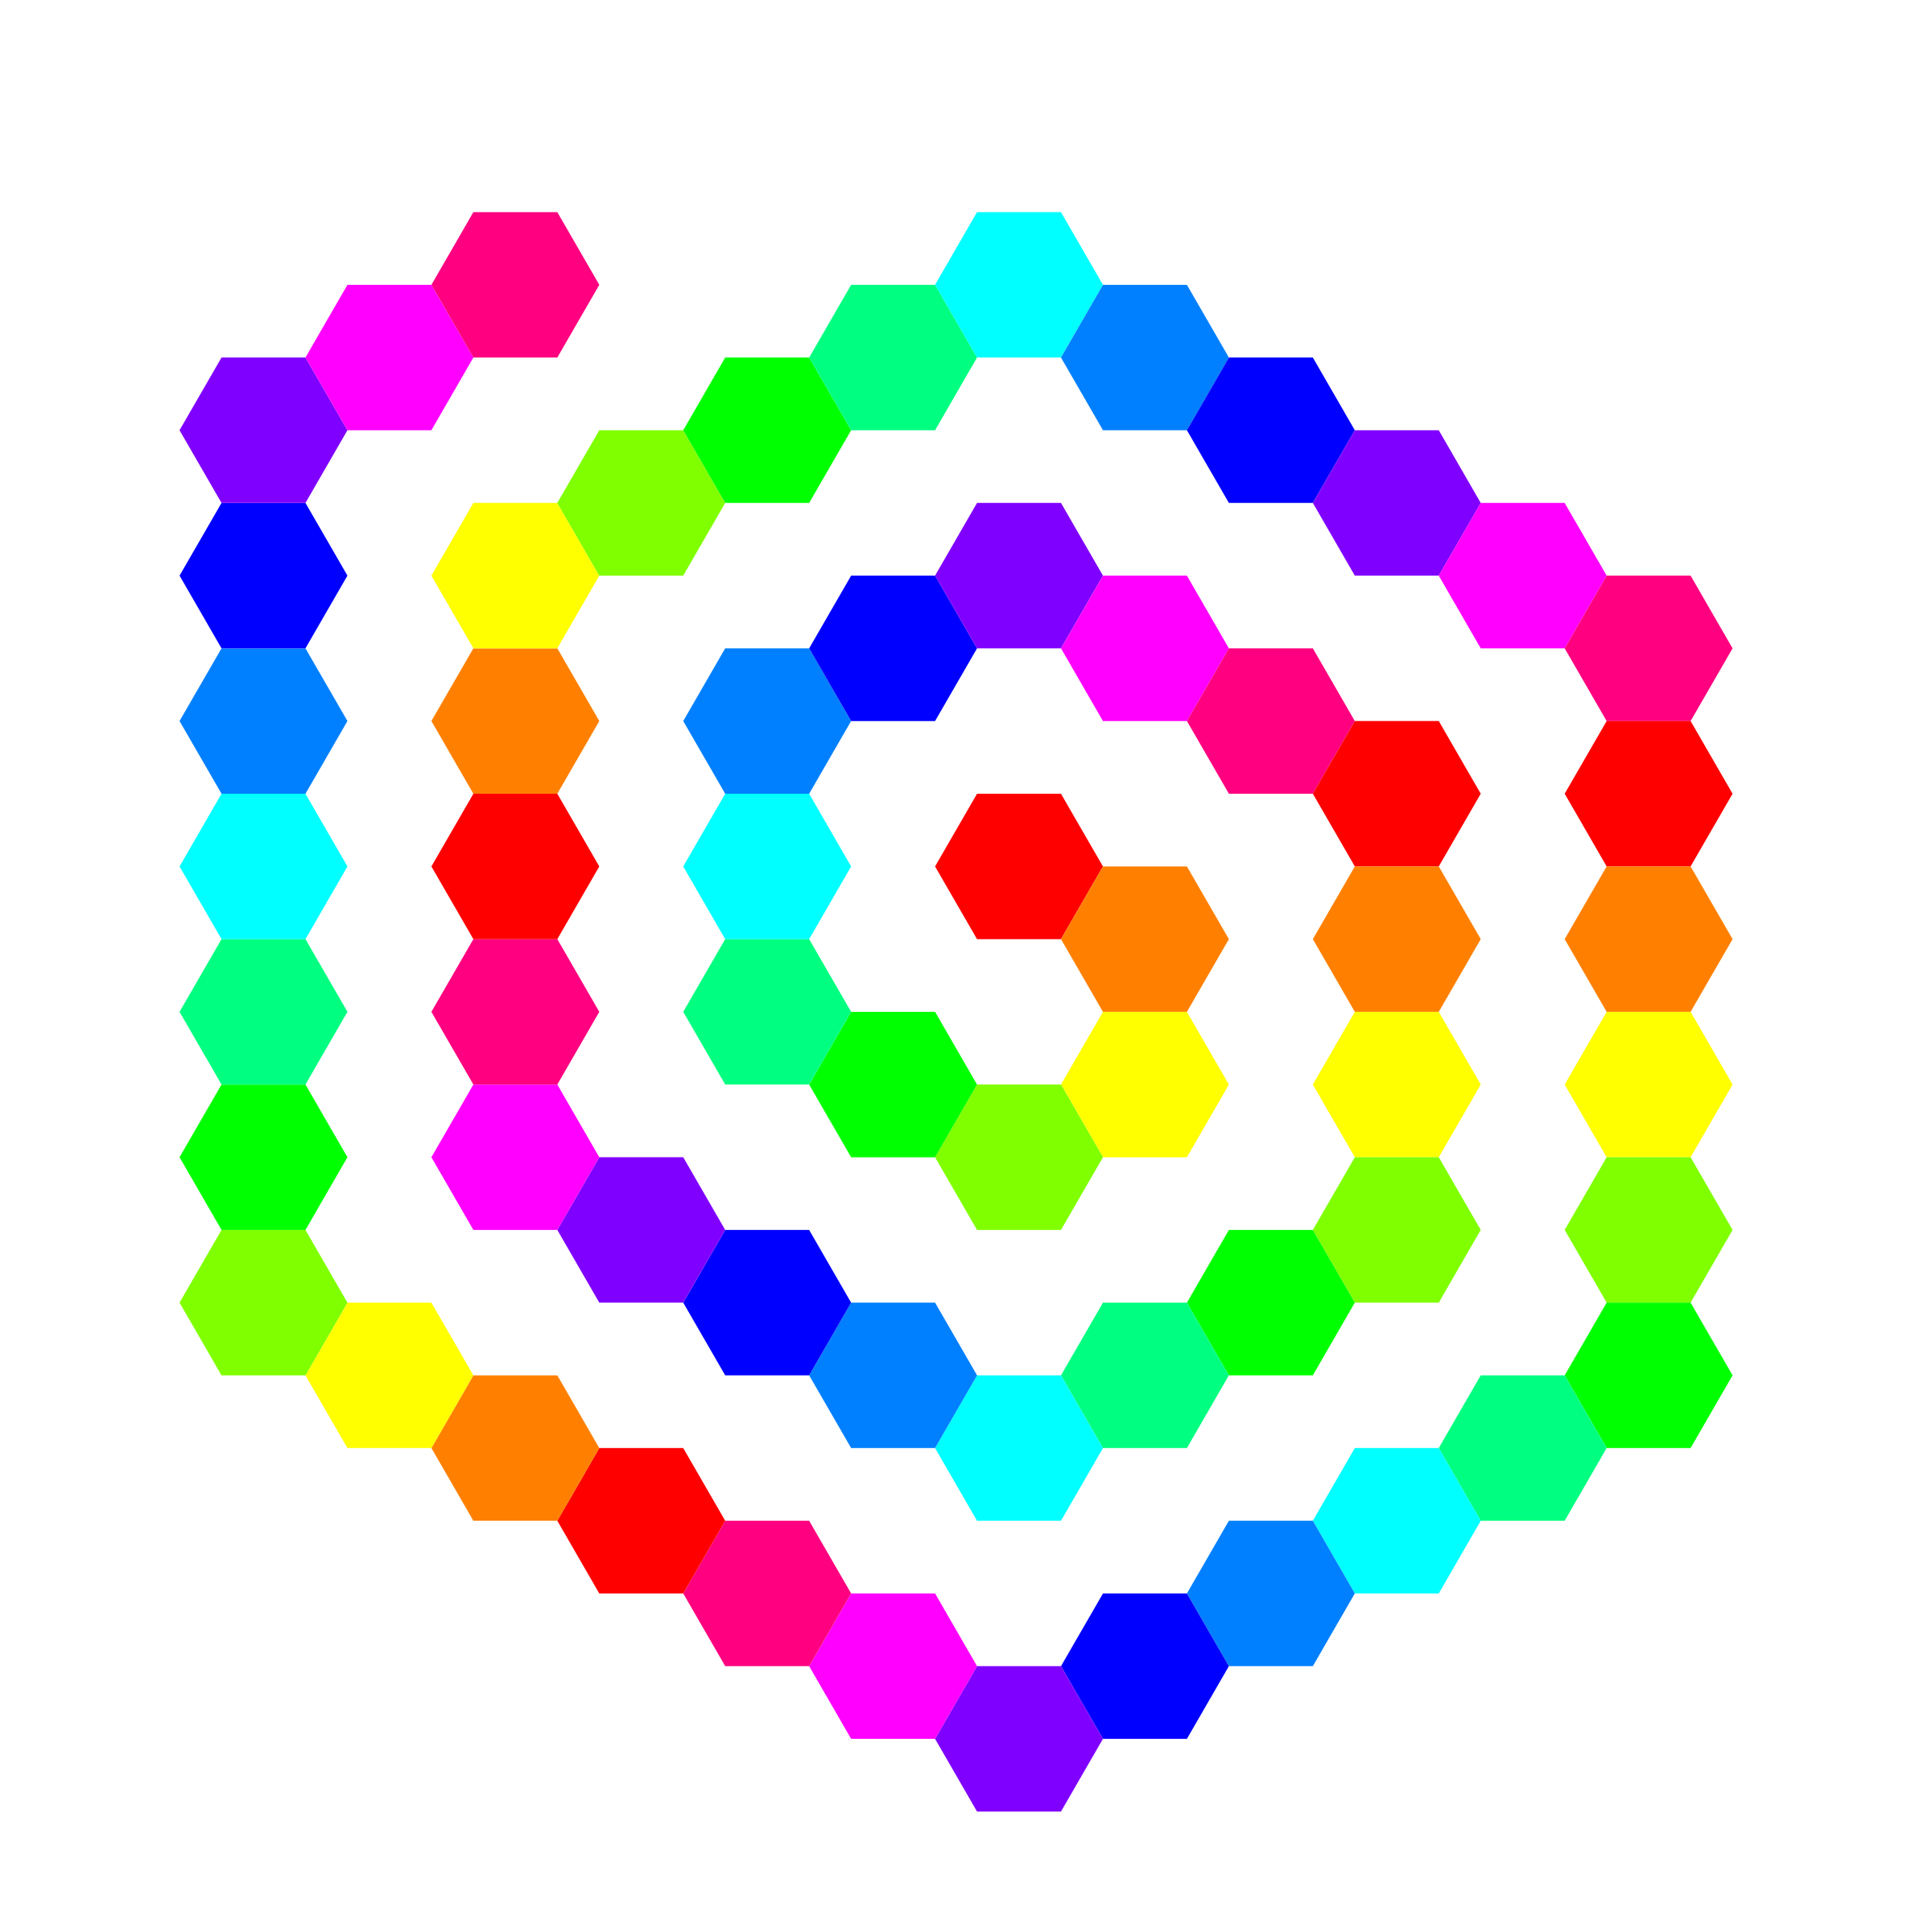 60 hexagon spiral by 10binary